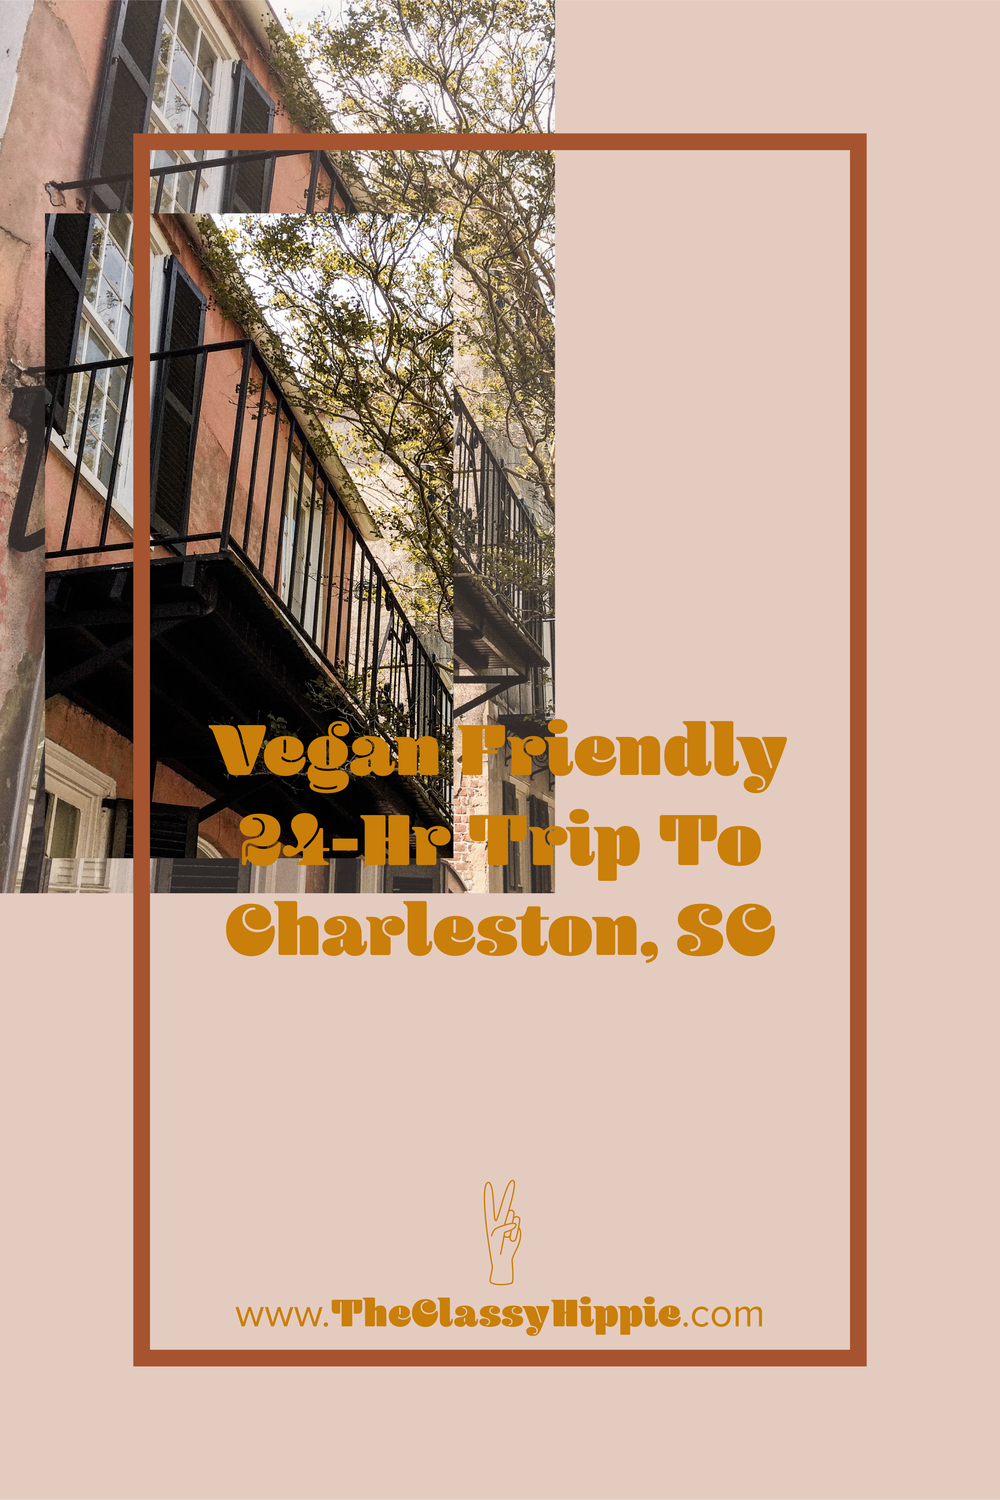 Vegan Friendly 24-Hr Trip to Charleston, SC from The Classy Hippie